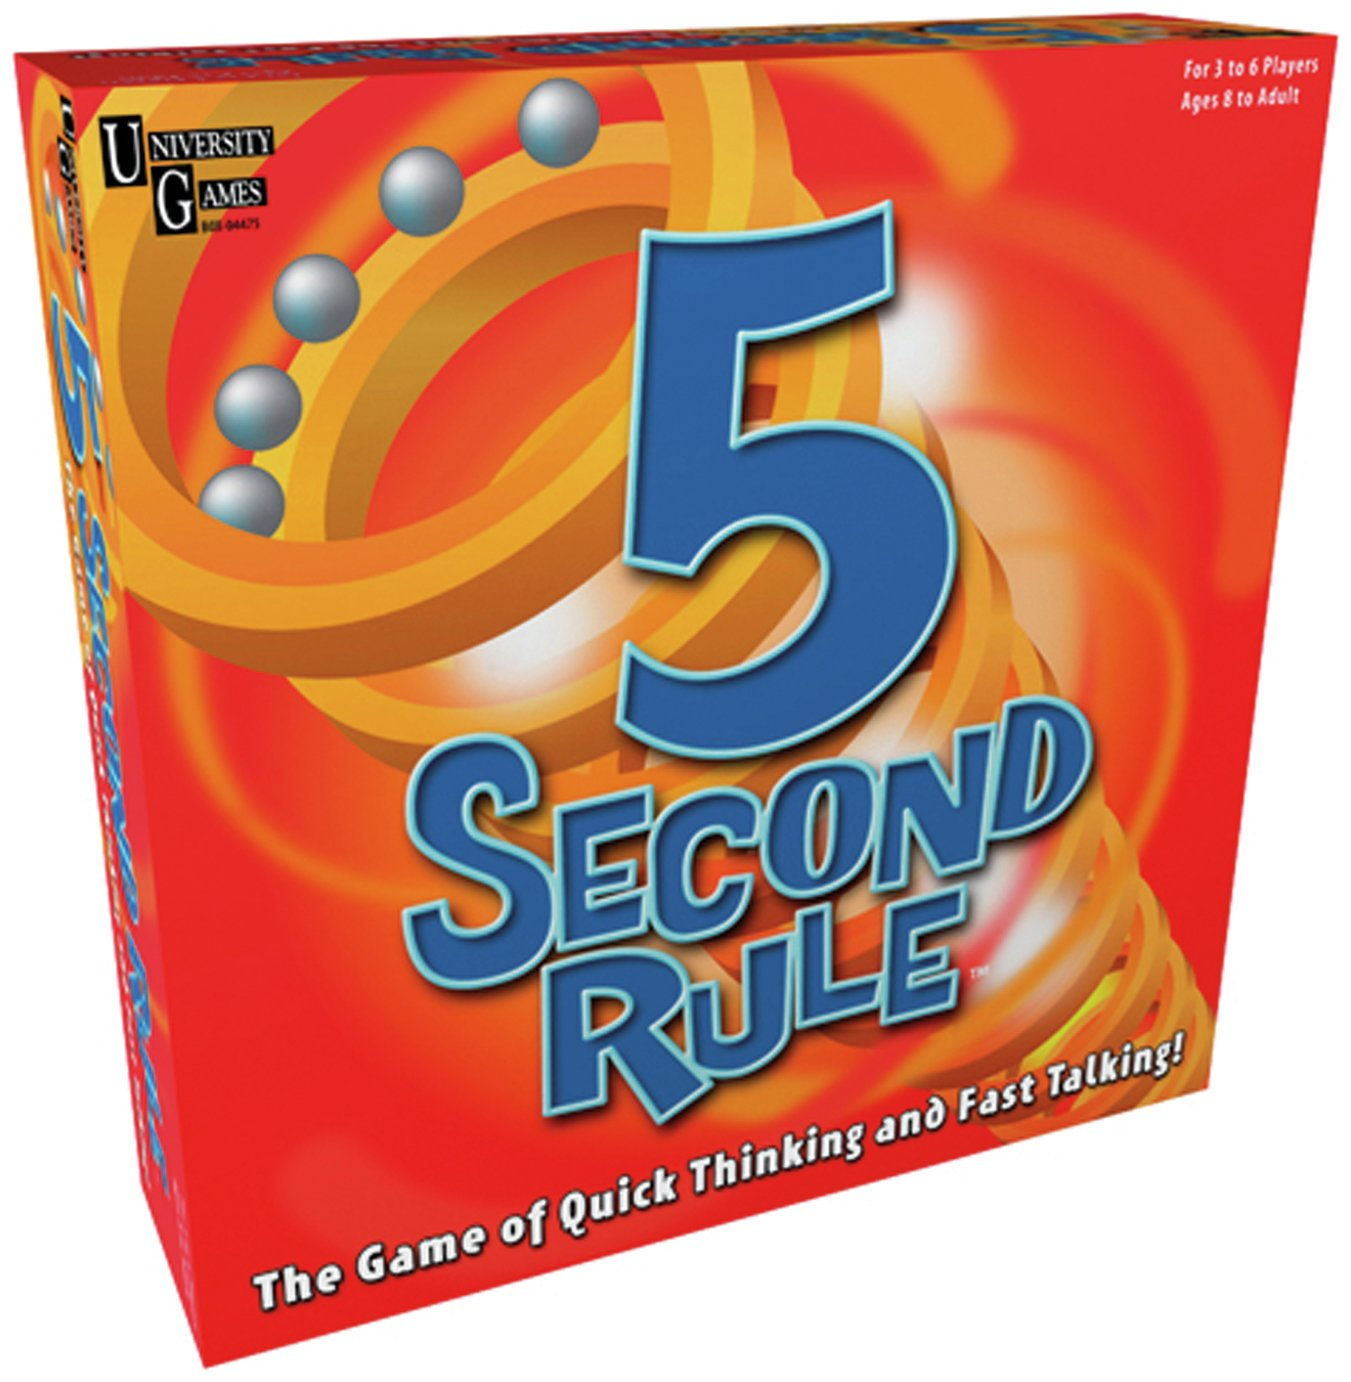 Image of University Games 5 Second Rule Games